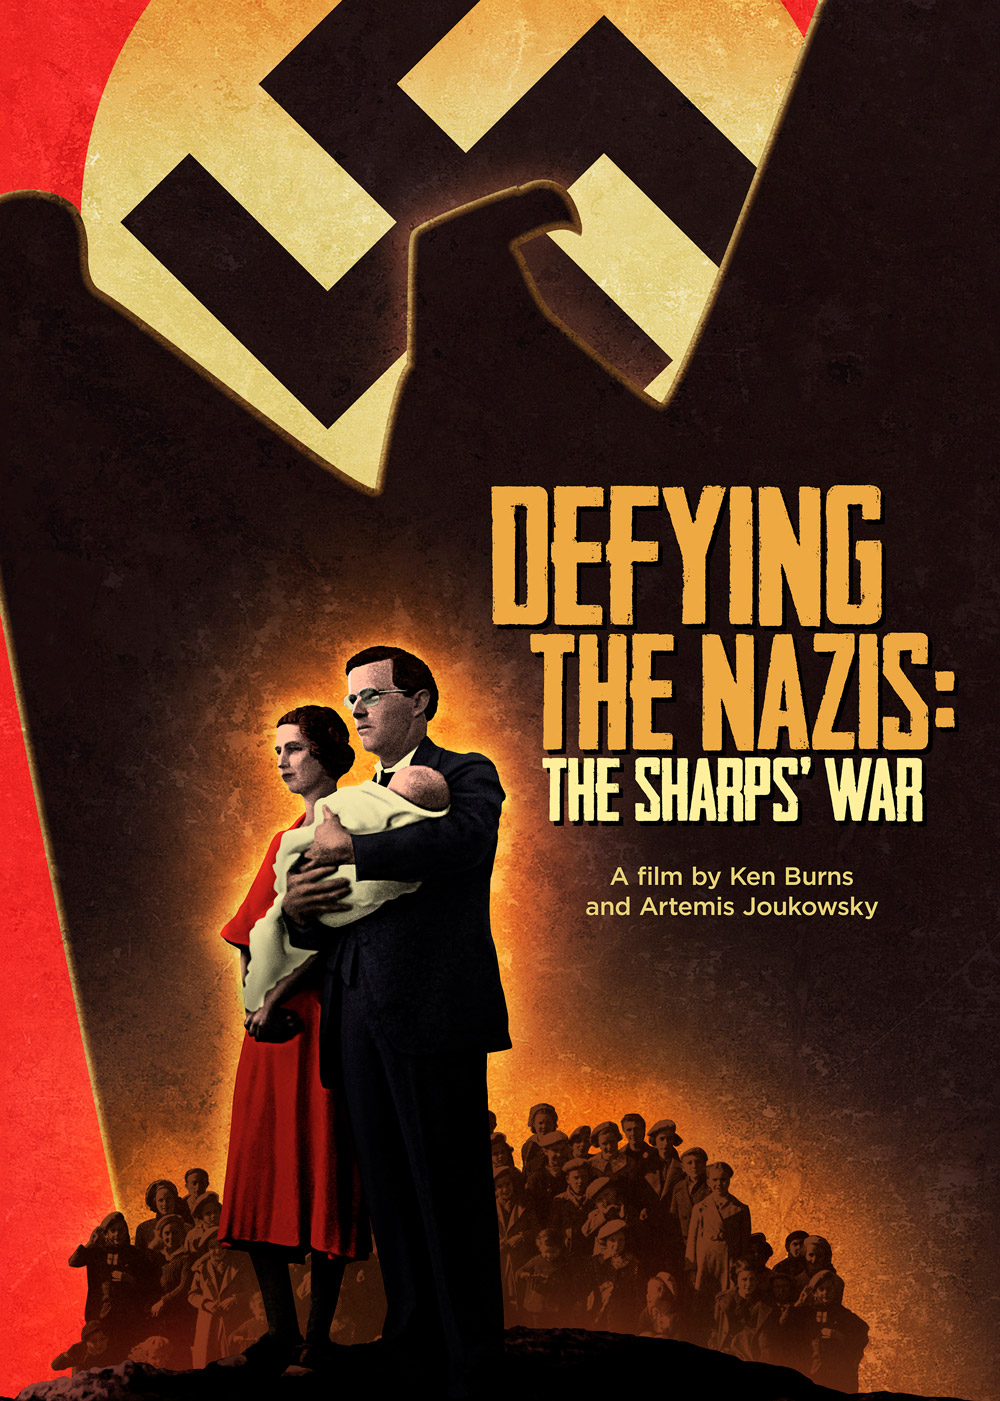 Defying the Nazis key art